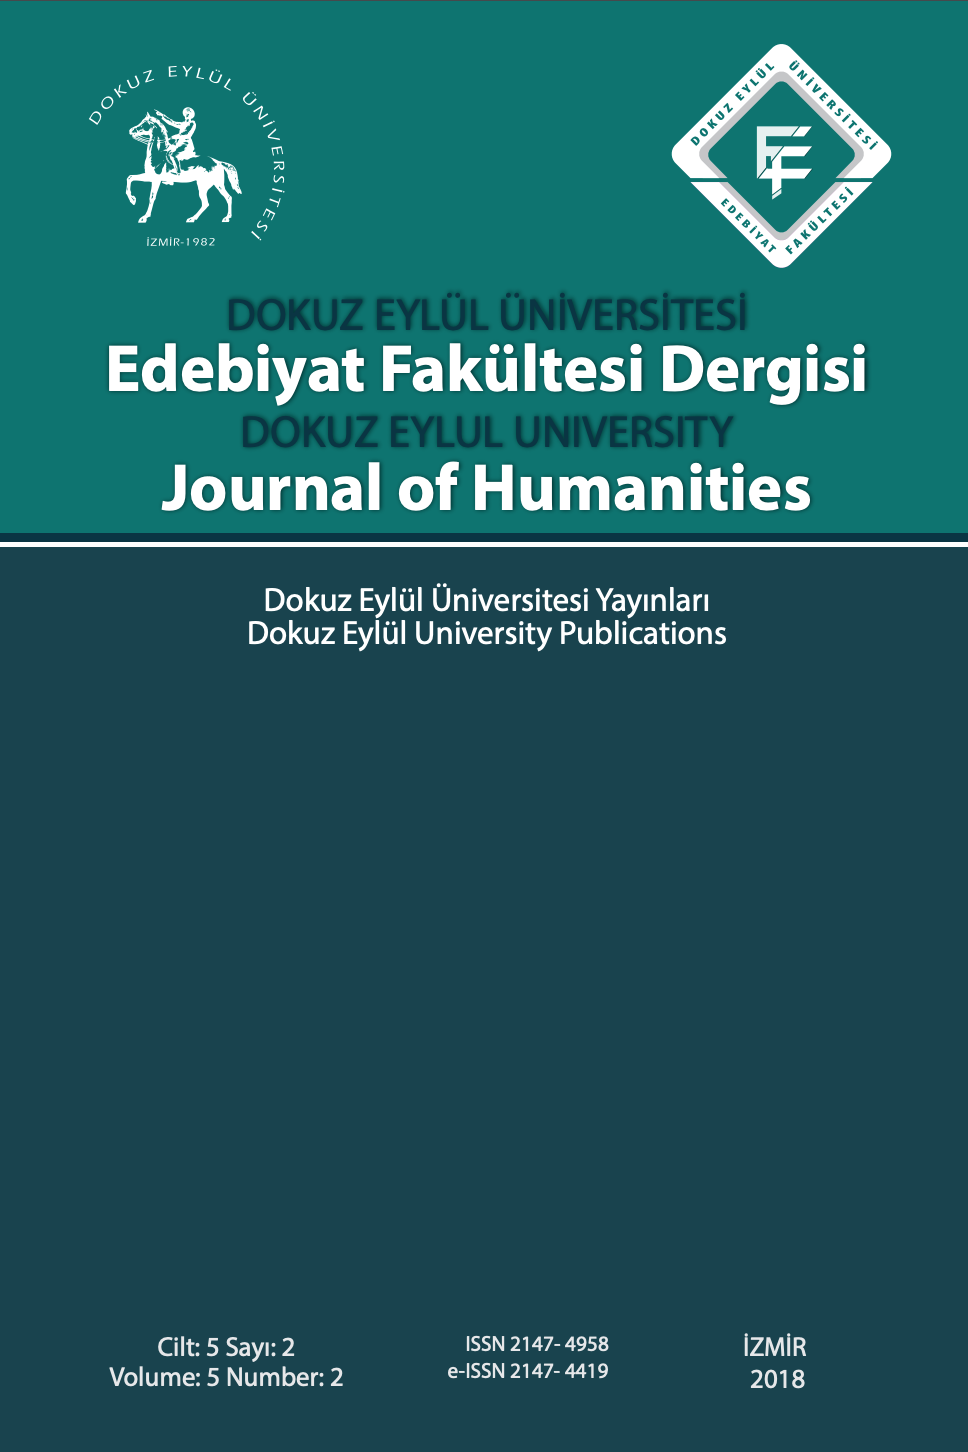 Dokuz Eylül University Journal of Humanities